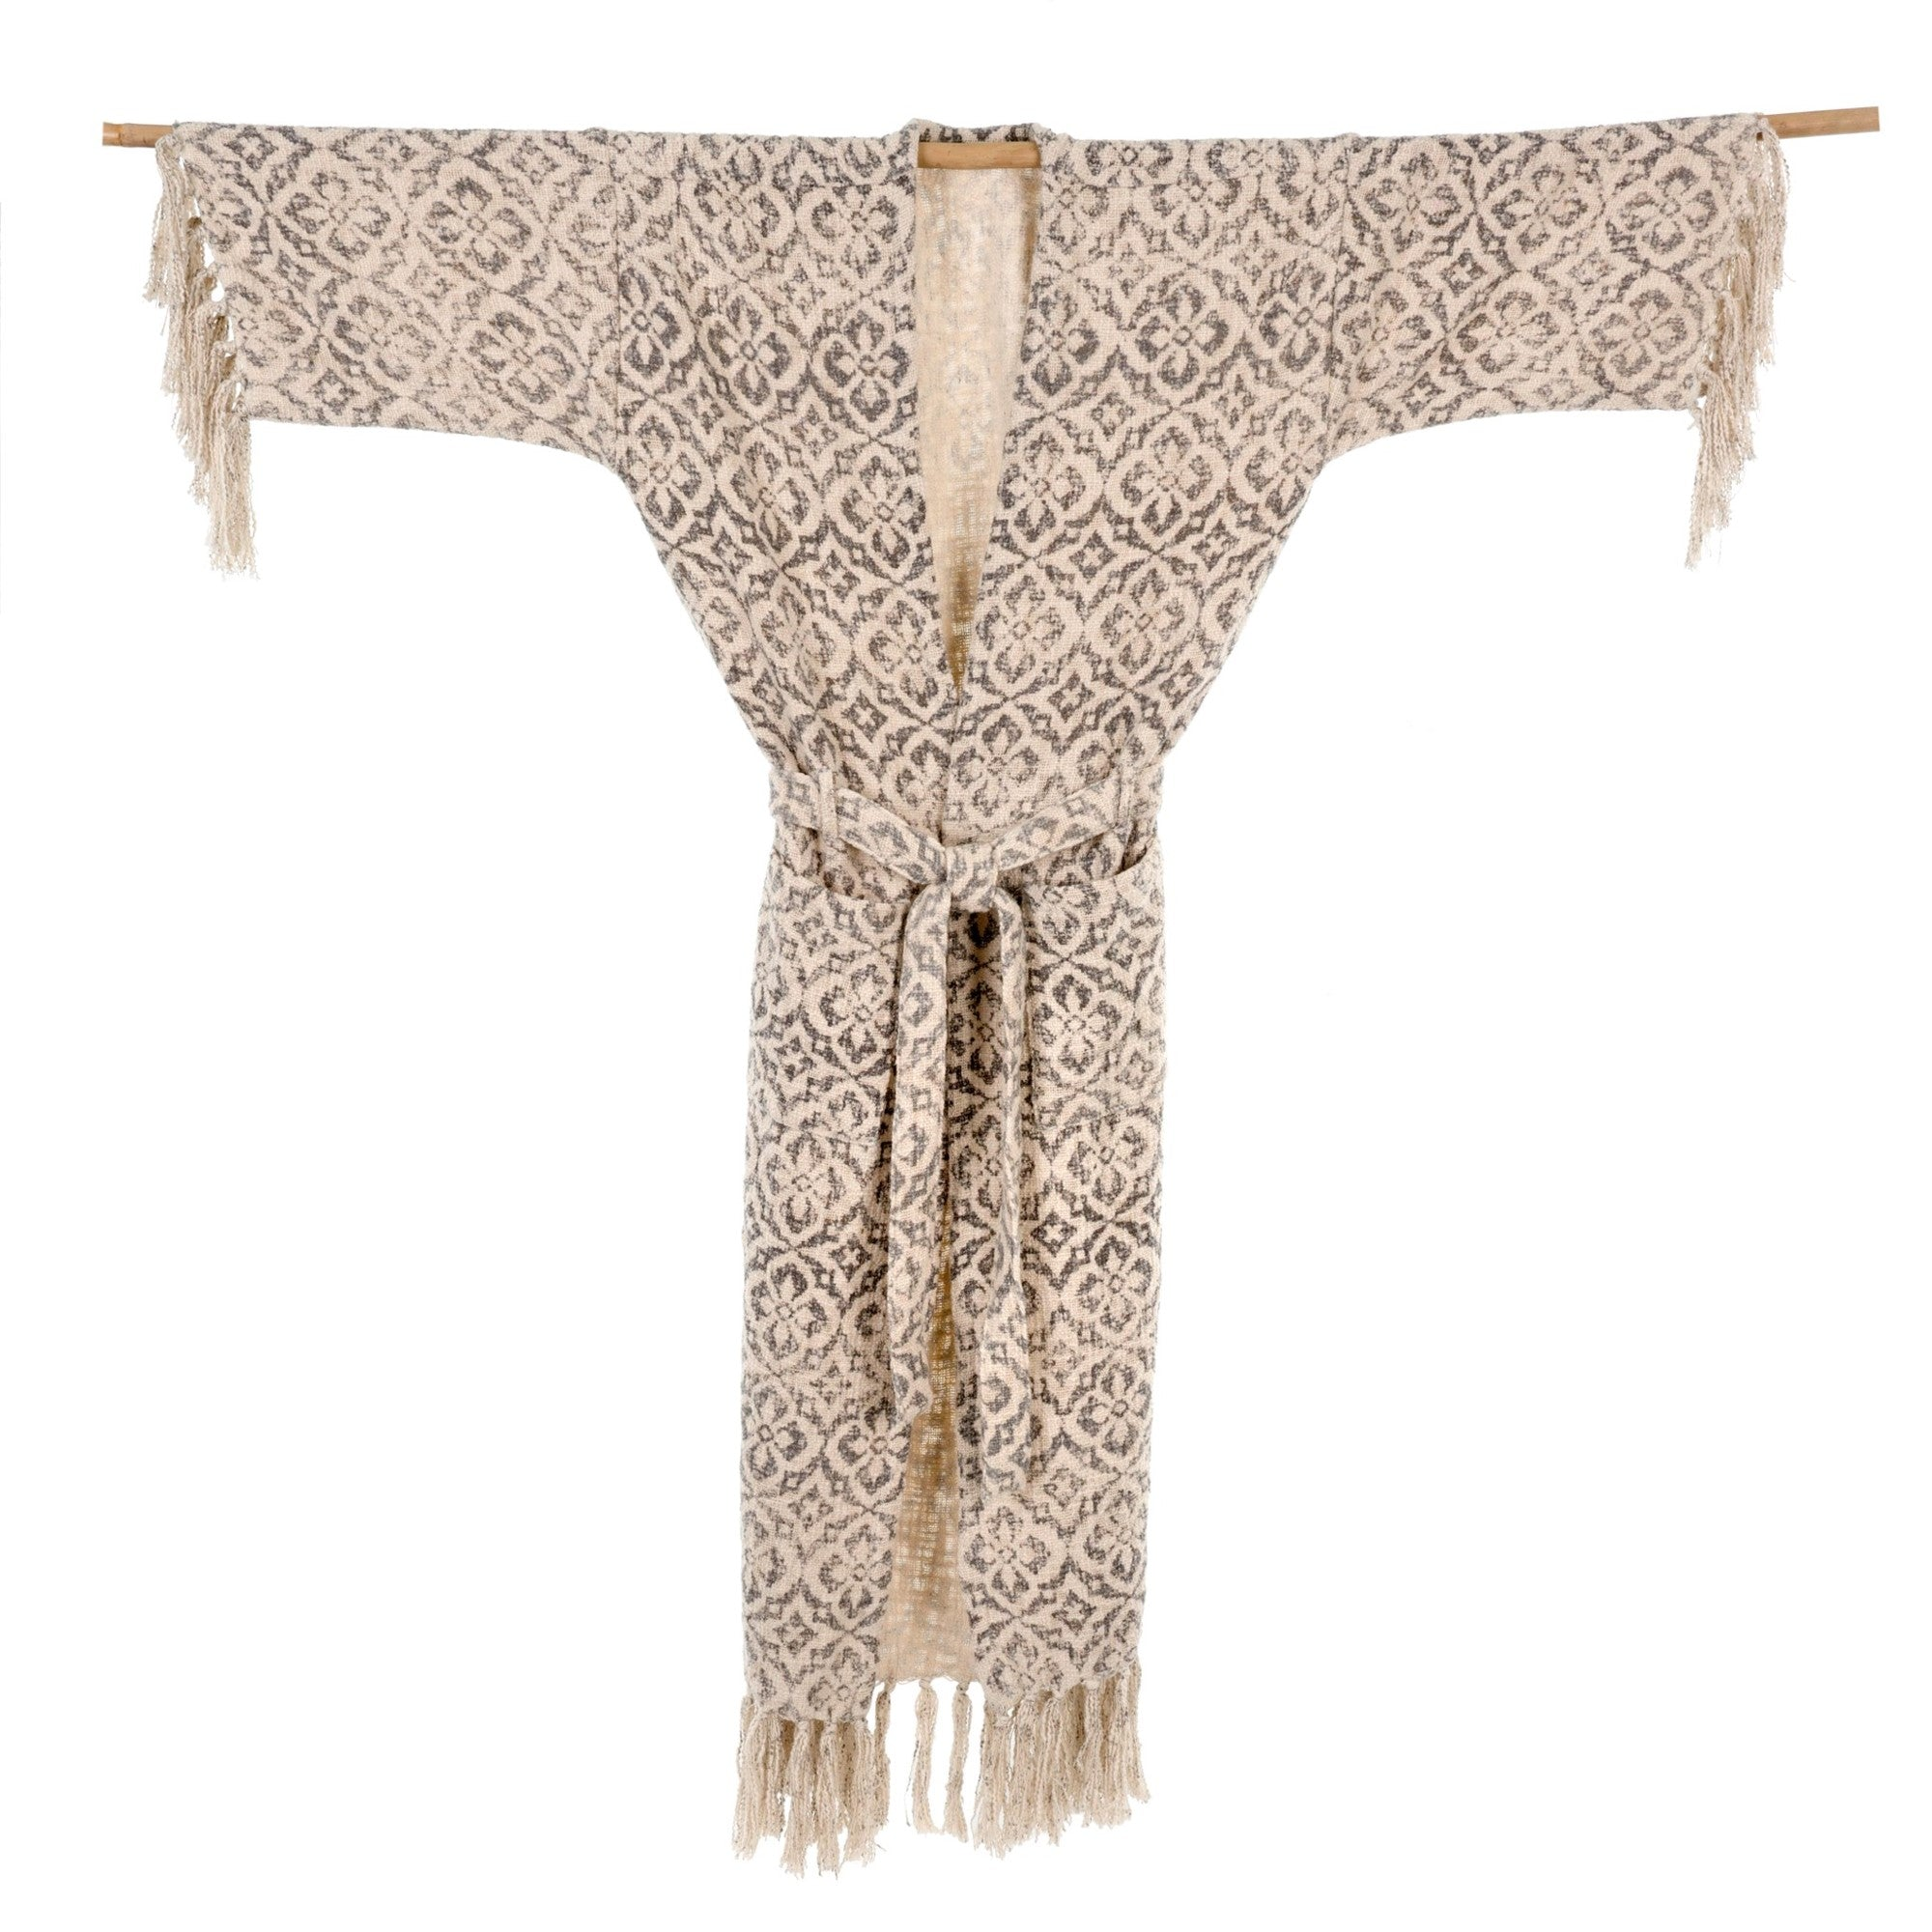 Woven Cotton Tassel Robe, IT-Indaba Trading, Putti Fine Furnishings